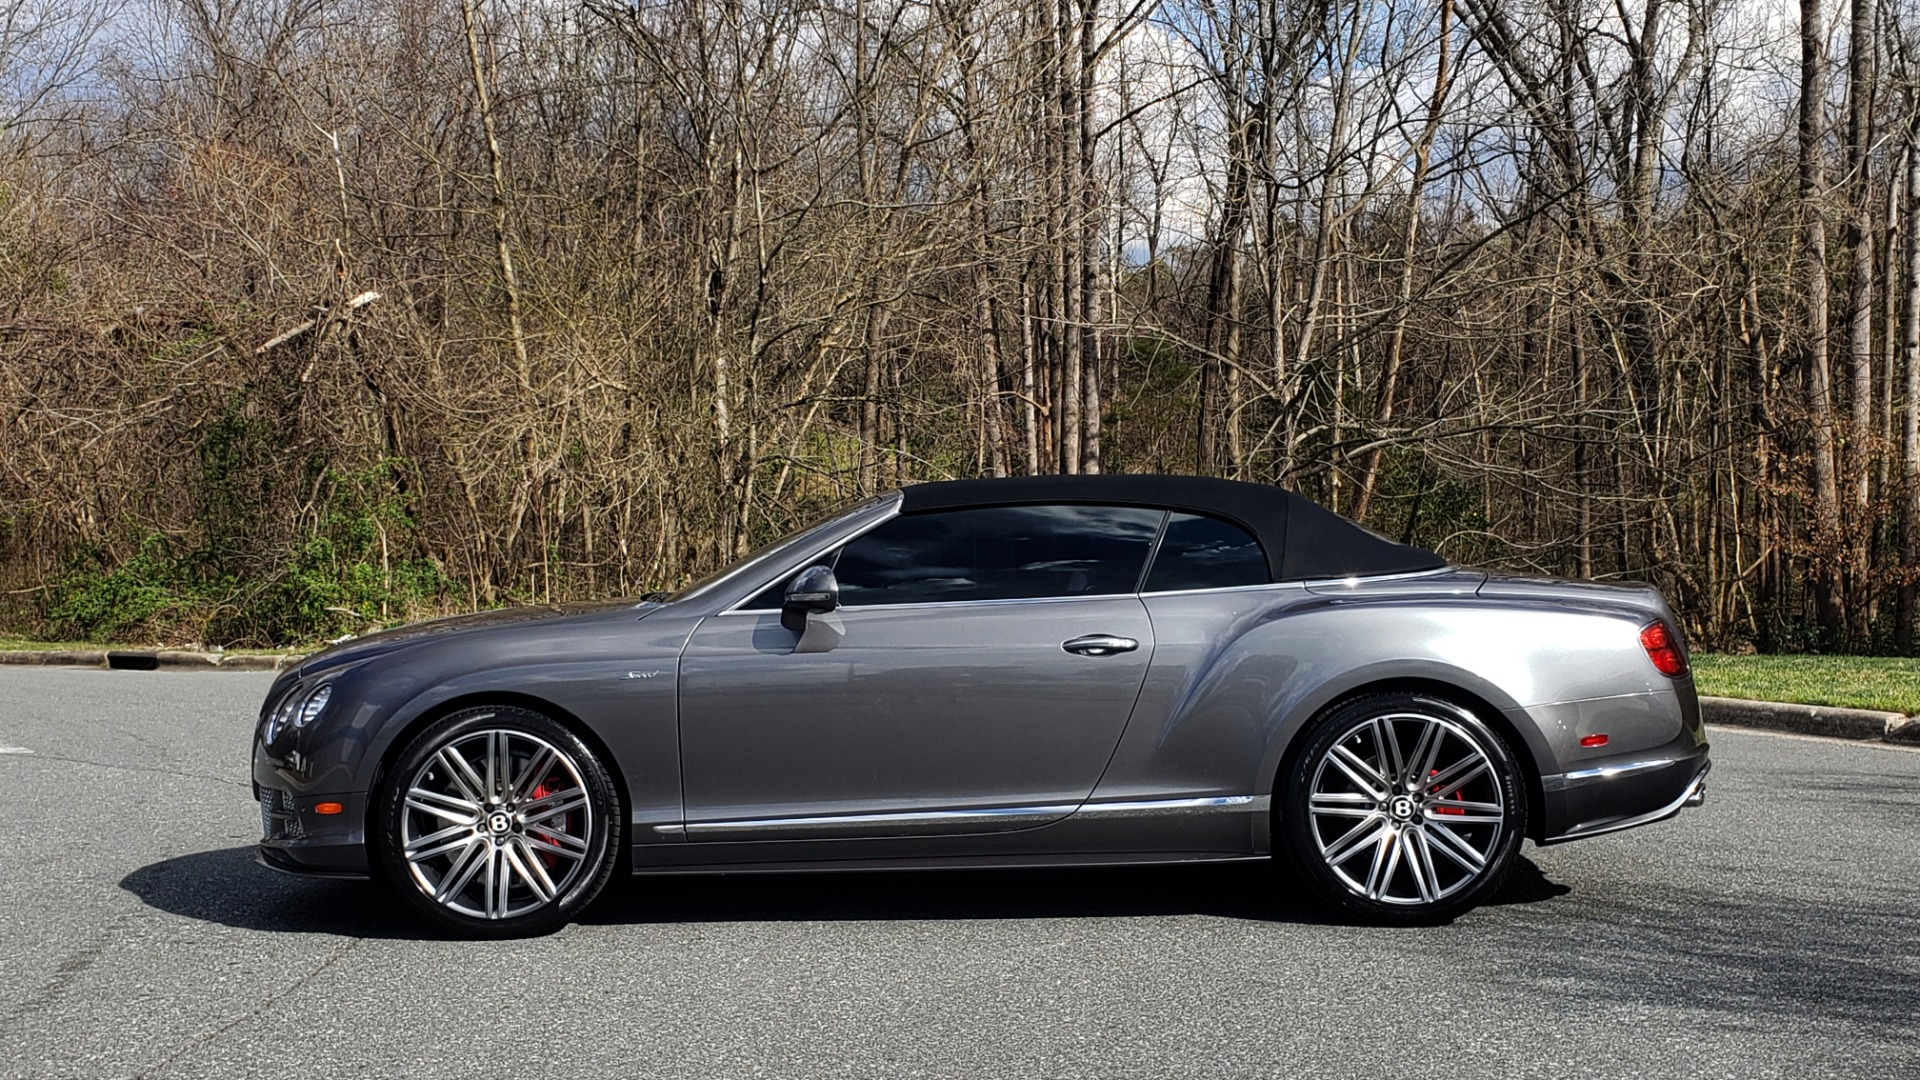 Used 2015 Bentley CONTINENTAL SPEED CONV / 6.0L W12 / NAV / VENT SEATS / REARVIEW for sale Sold at Formula Imports in Charlotte NC 28227 6